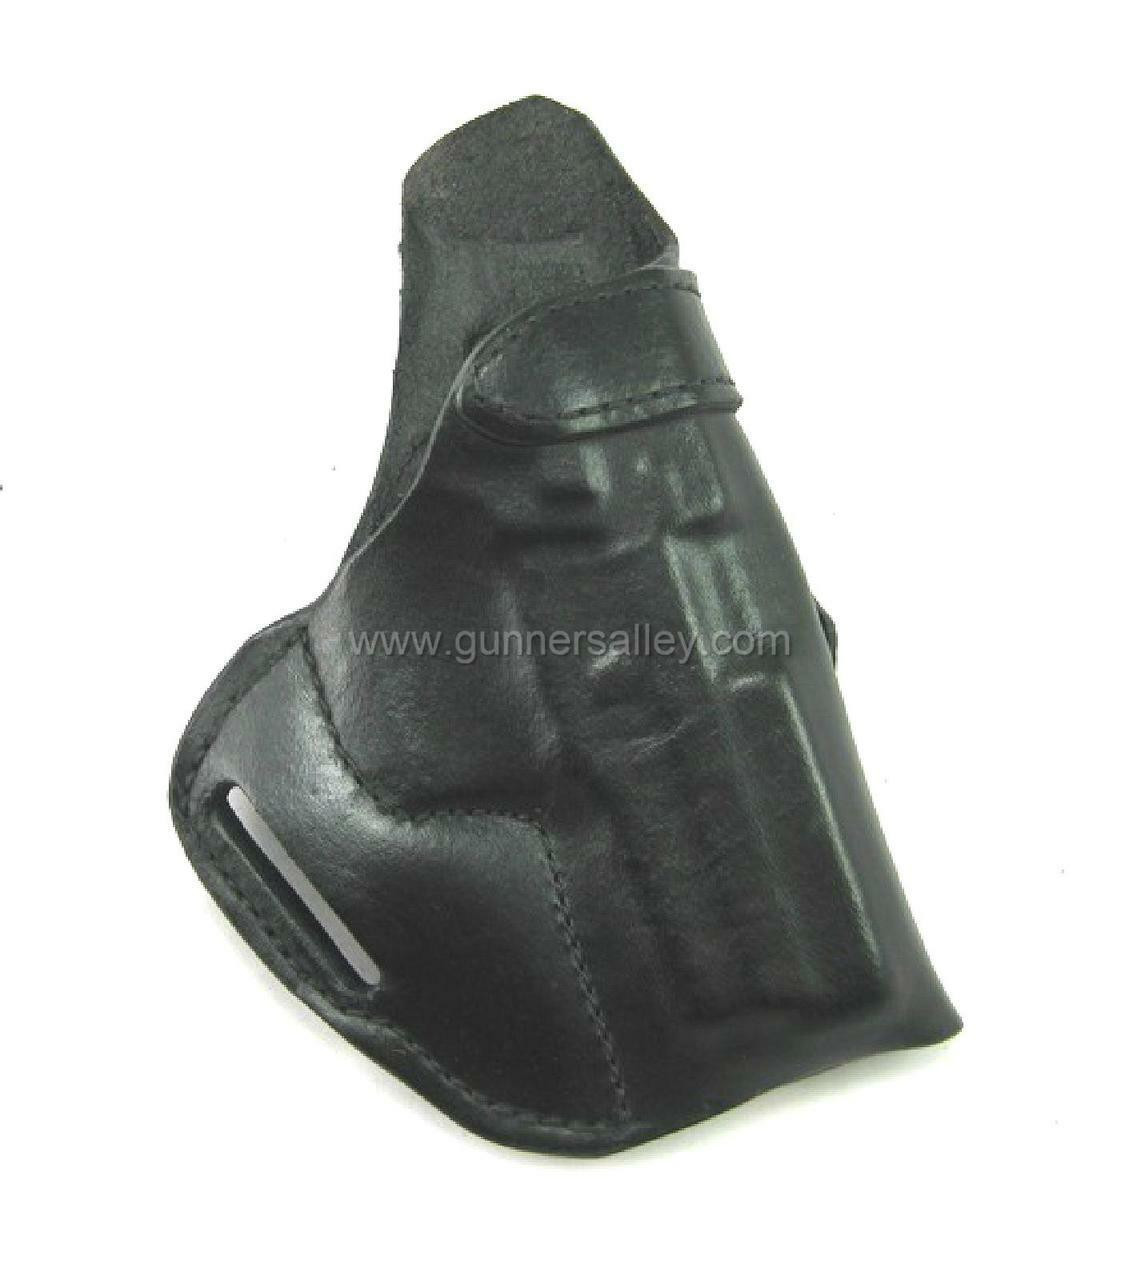 RH Black MTR Custom Crossdraw Holster for a Sig P227 .45 - Front View